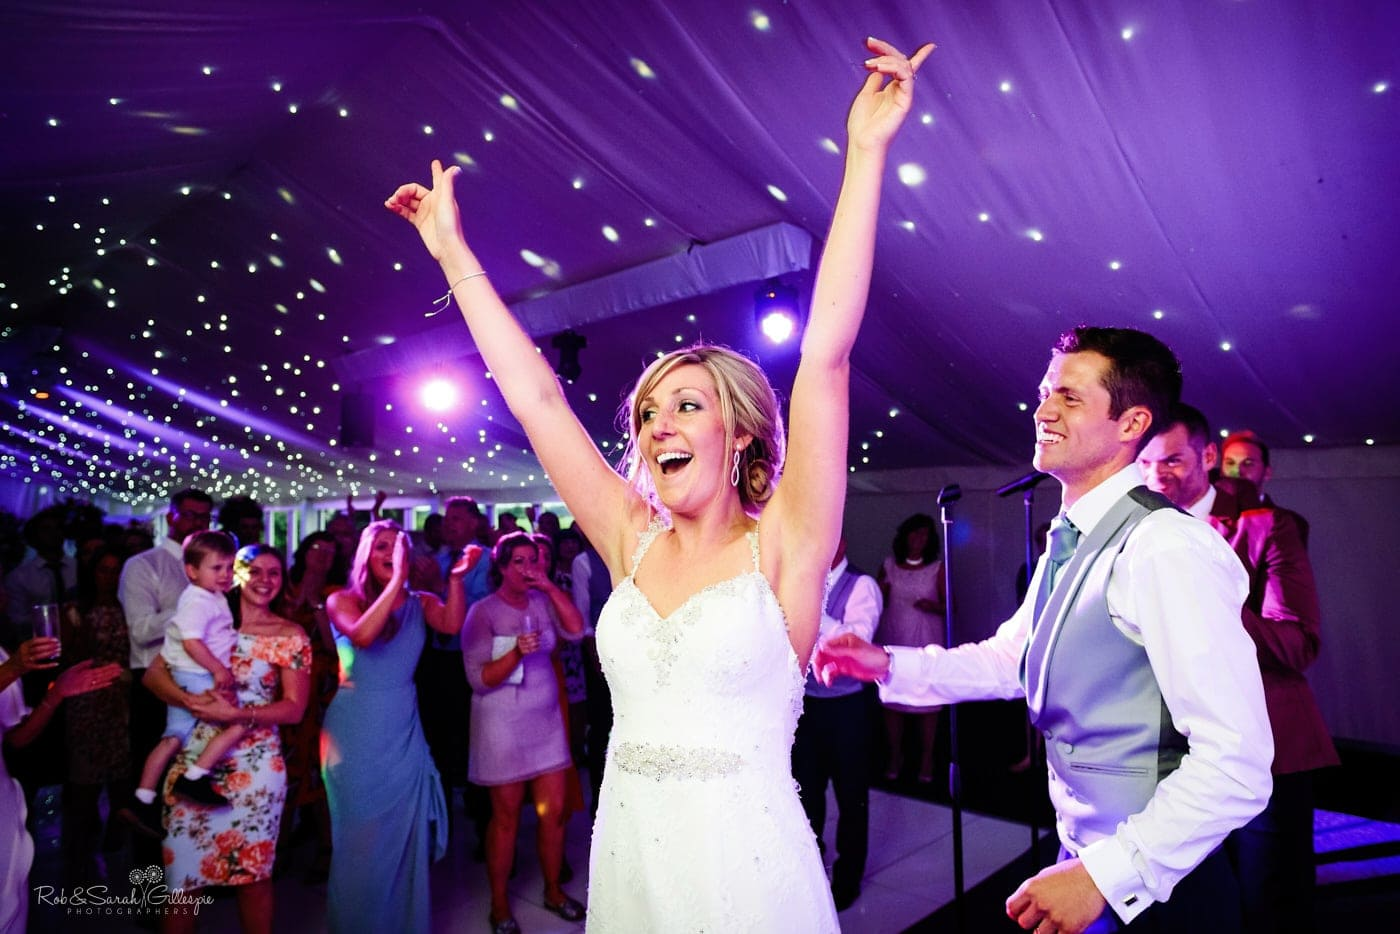 Bride hands in air as she performs first dance at wedding